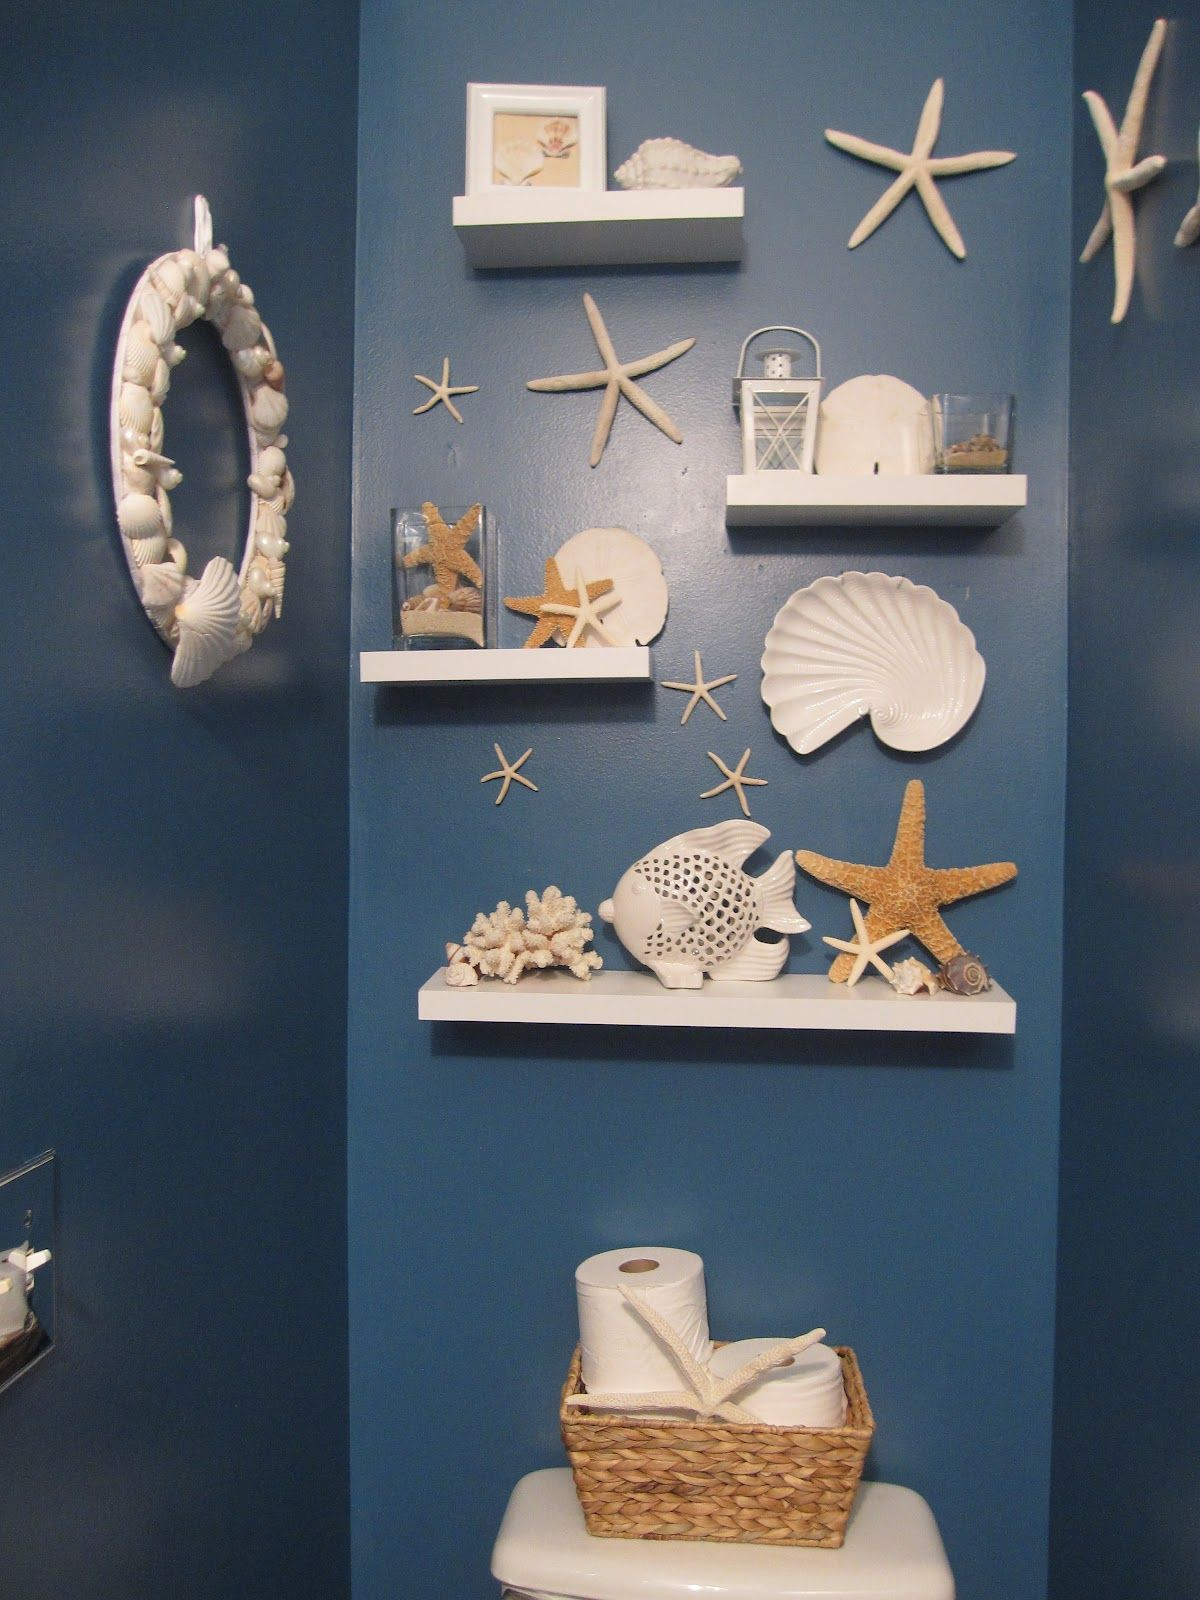 Half Bathroom Decorating 25 Decoration Ideas To Getting Your Dream Nautical Bathroom